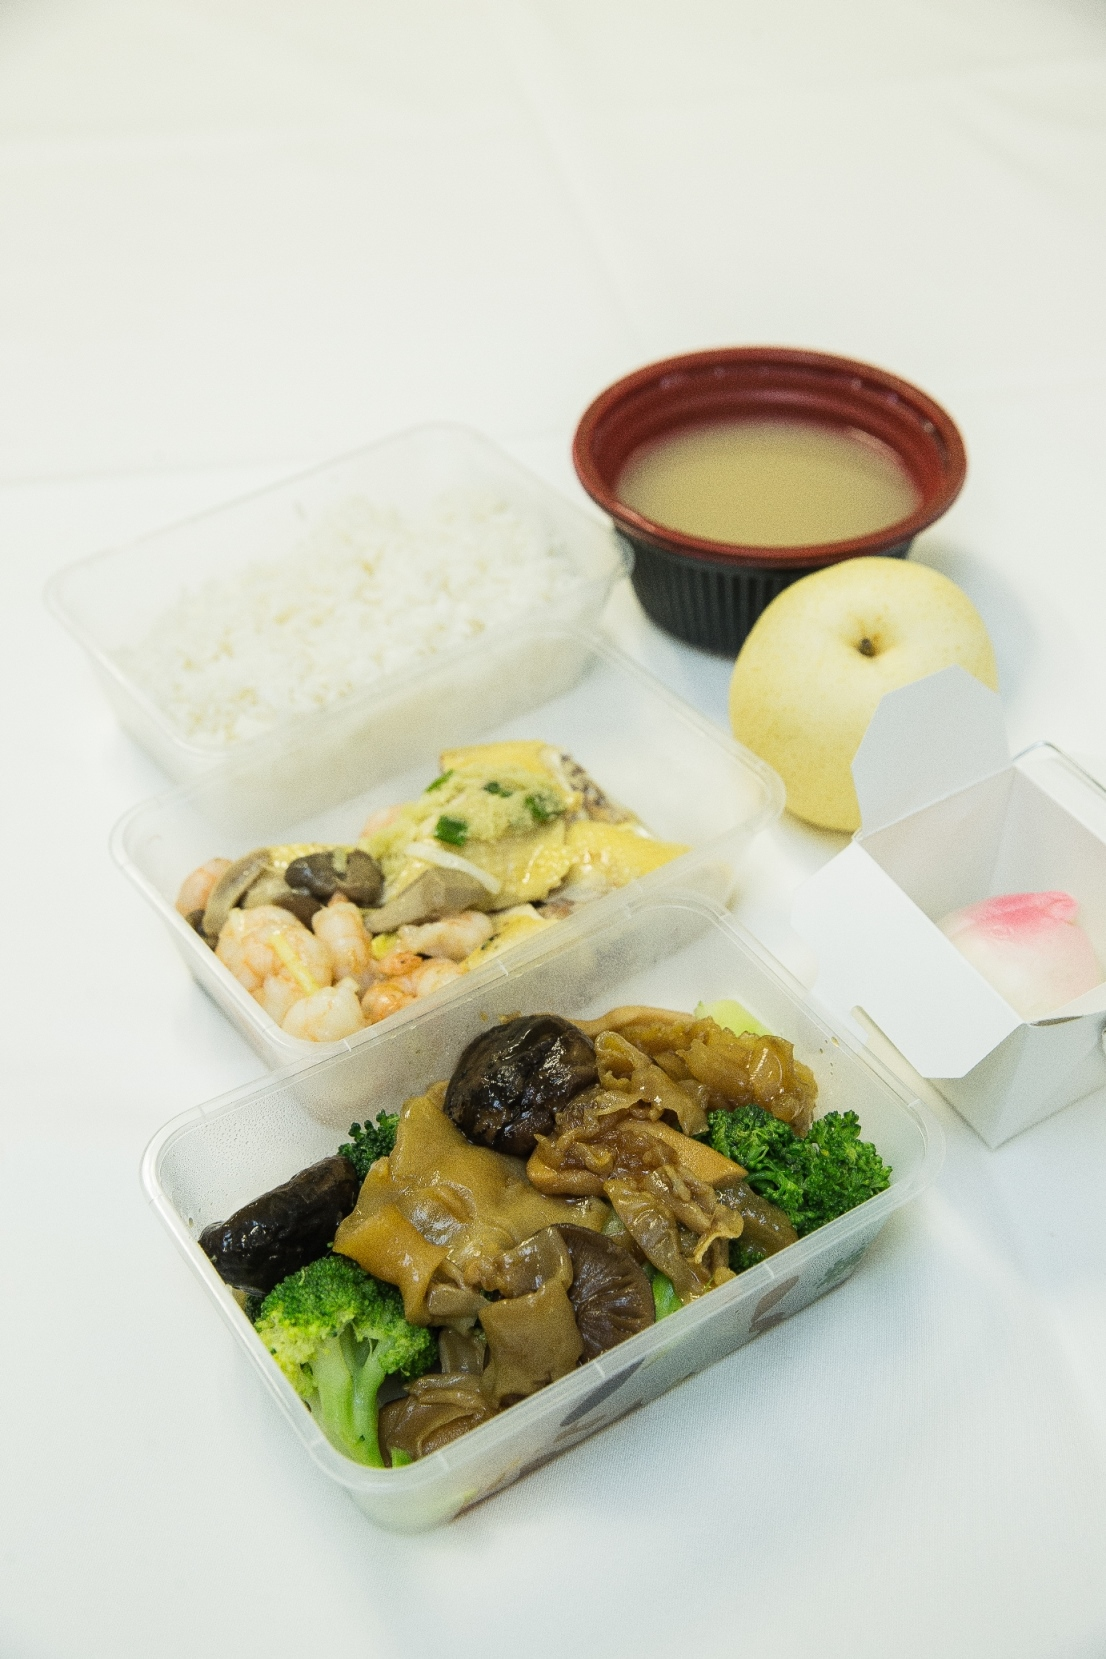 Sands Macao Celebrates 13th Anniversary with Free Boxed Lunches for Macao Taxi Drivers